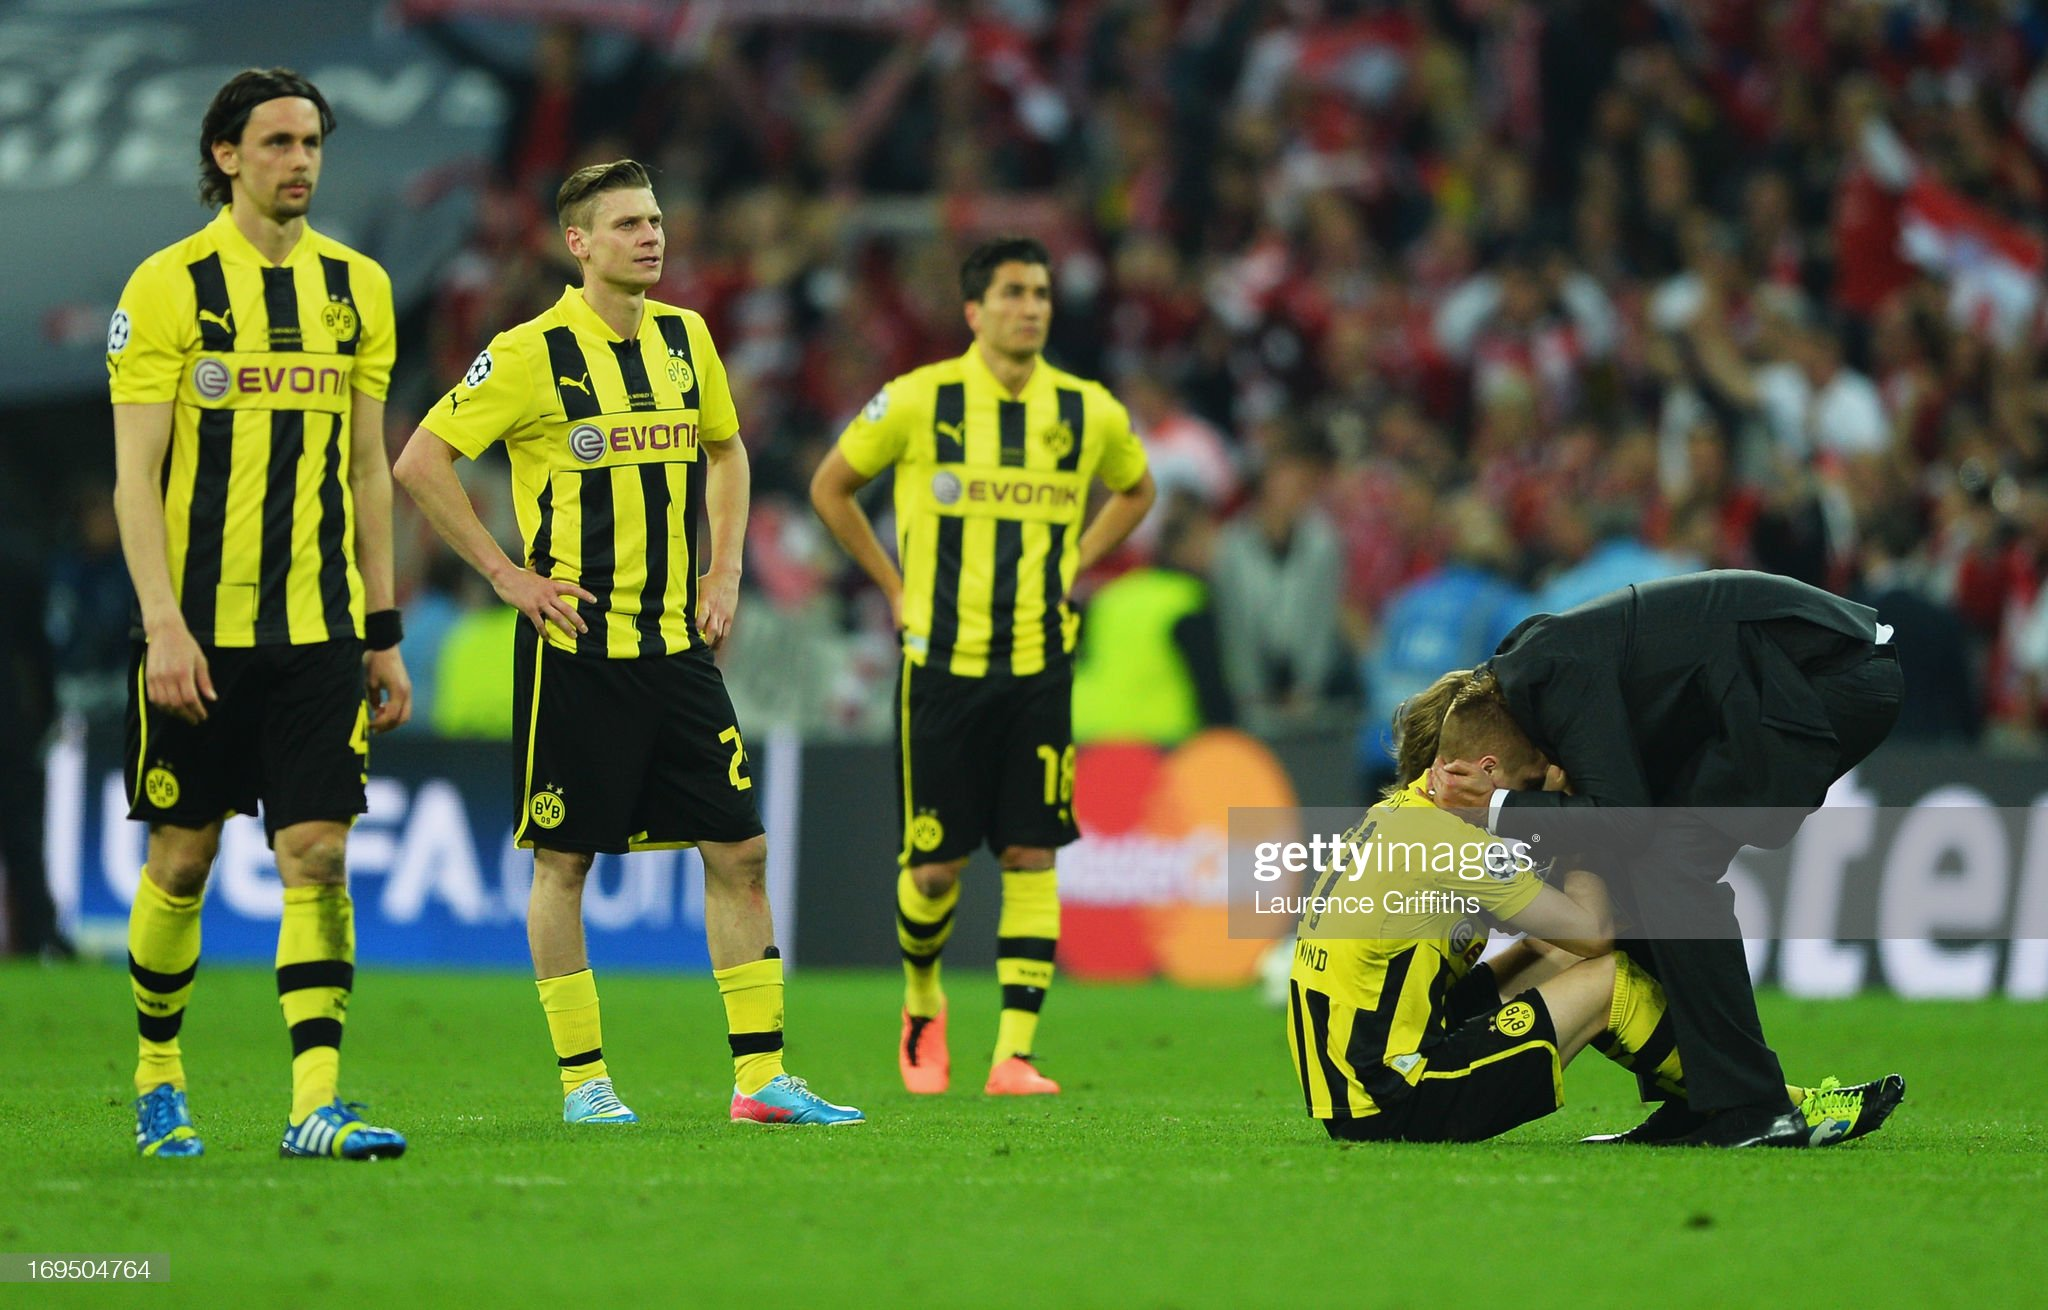 Borussia Dortmund v FC Bayern Muenchen - UEFA Champions League Final : News Photo